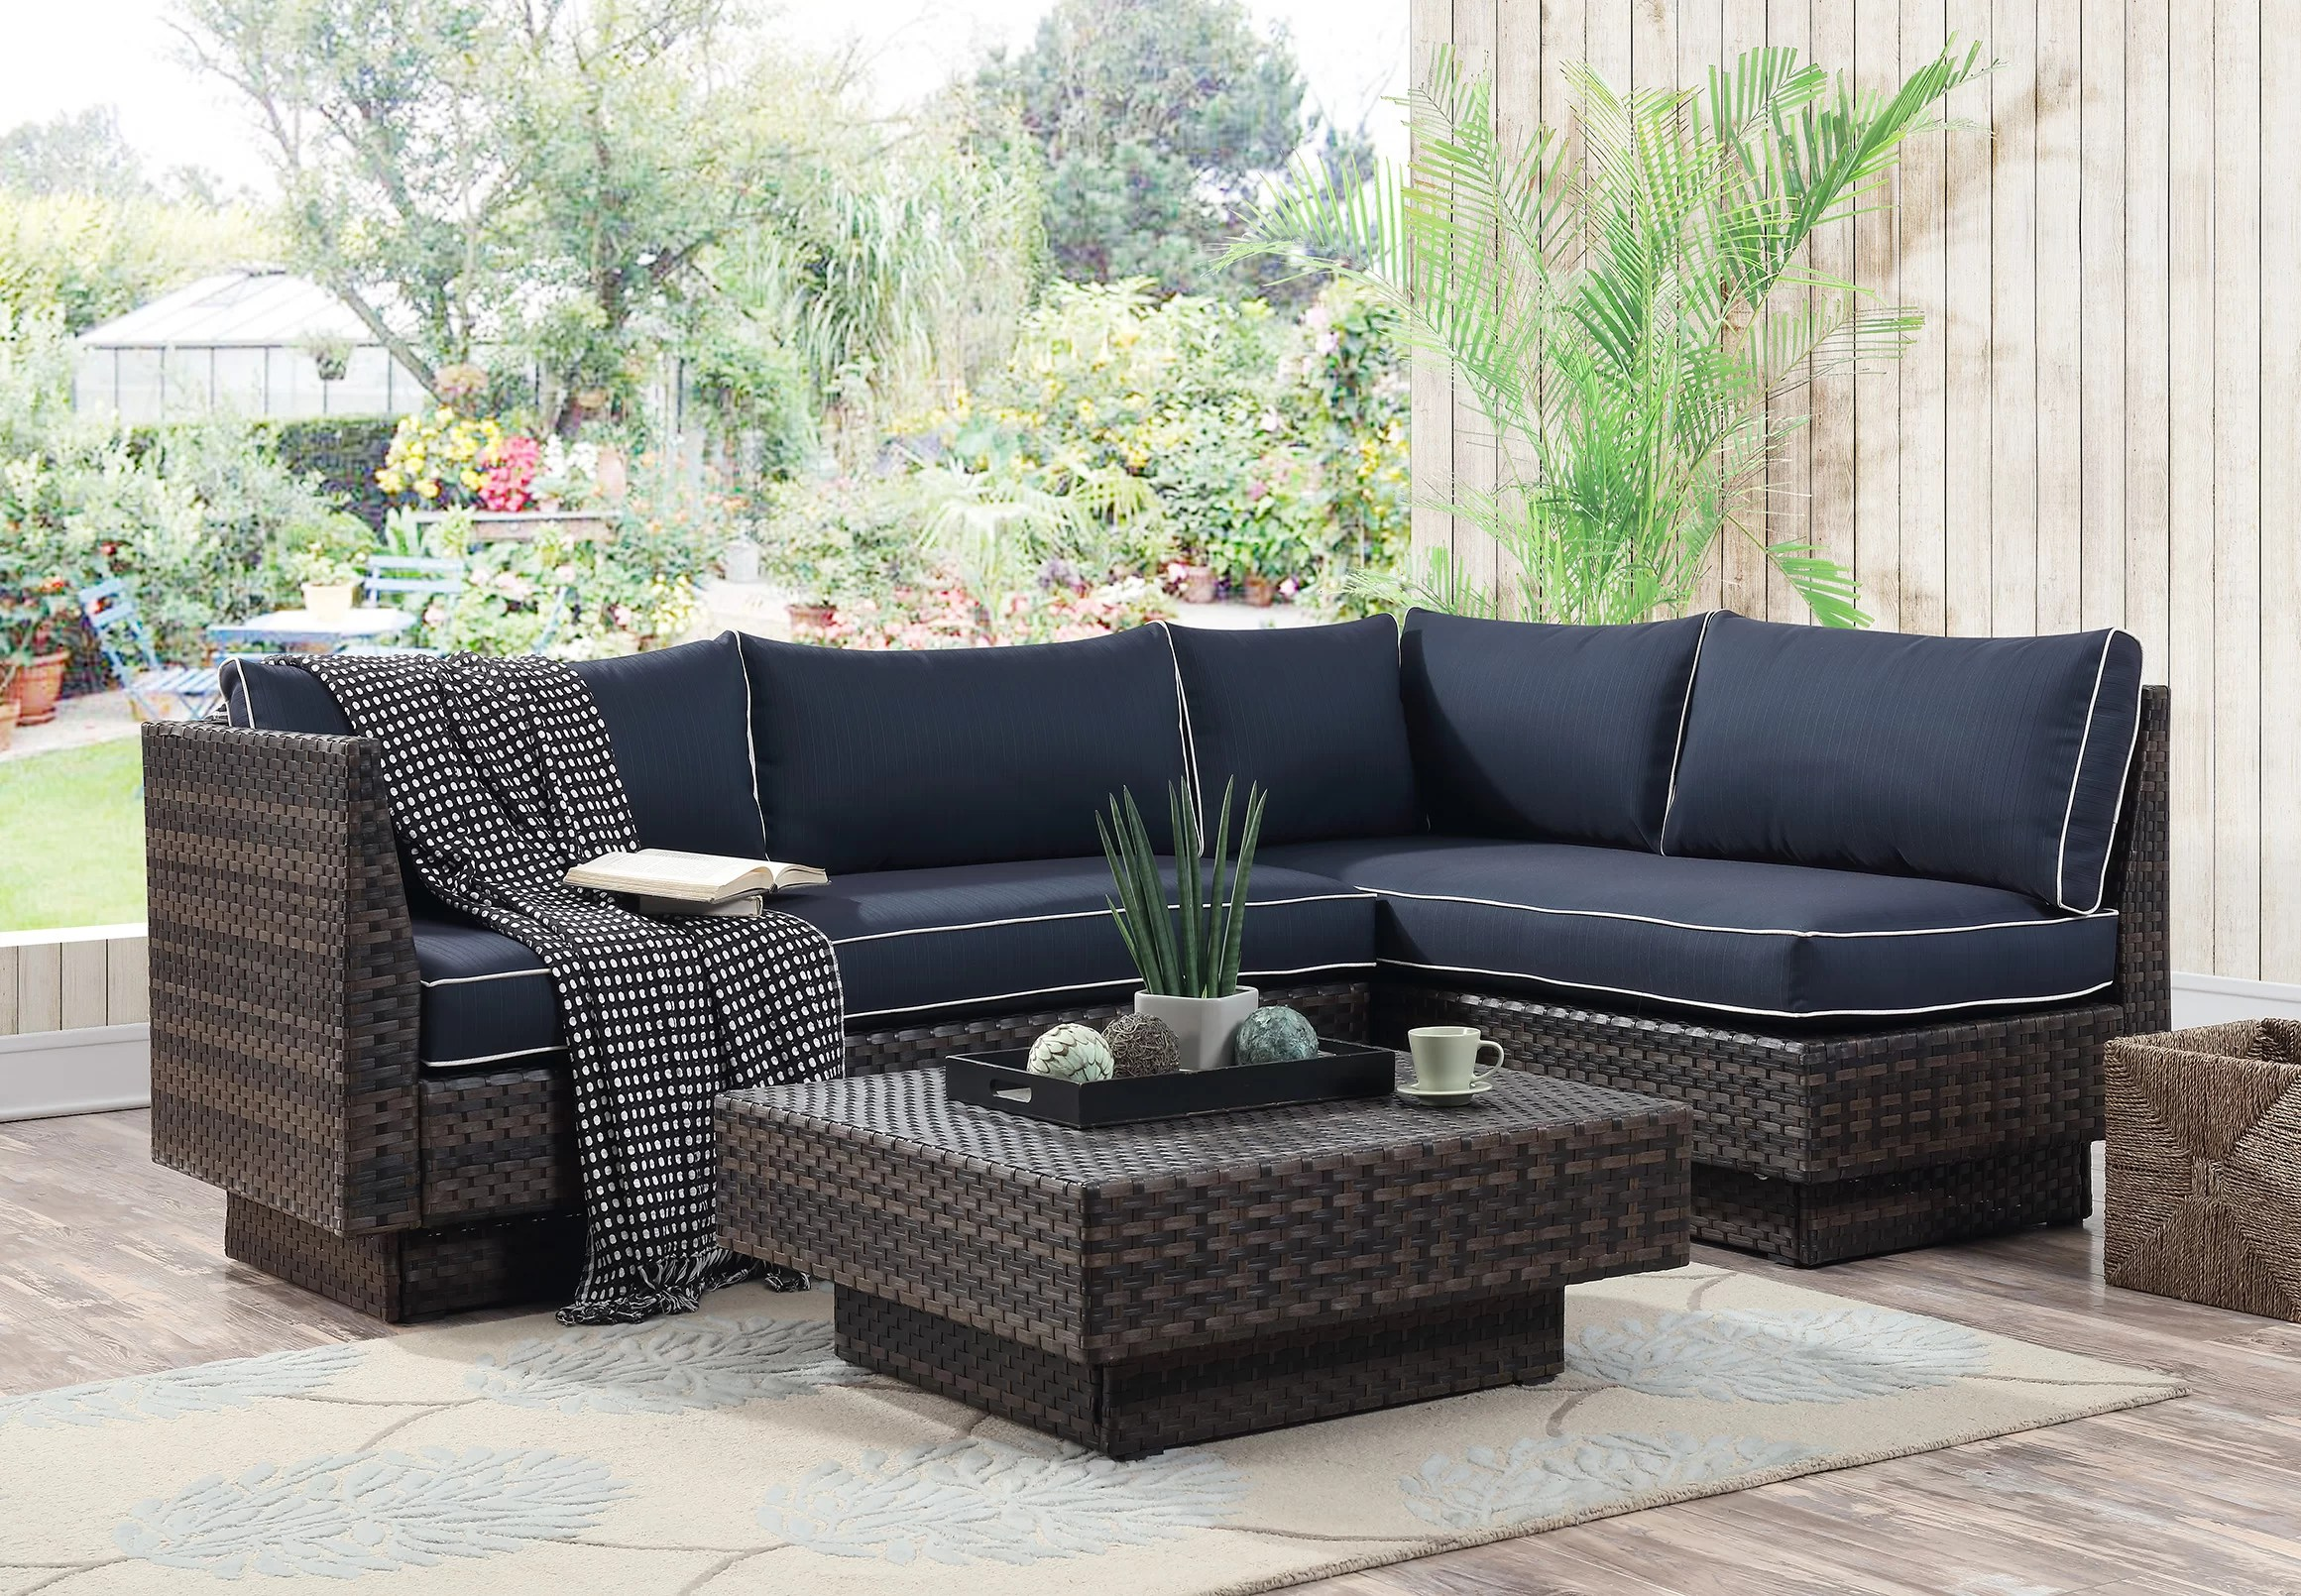 Rattan 3 Piece Sofa Mulford Outdoor 3 Piece Rattan Sectional Set With Cushions